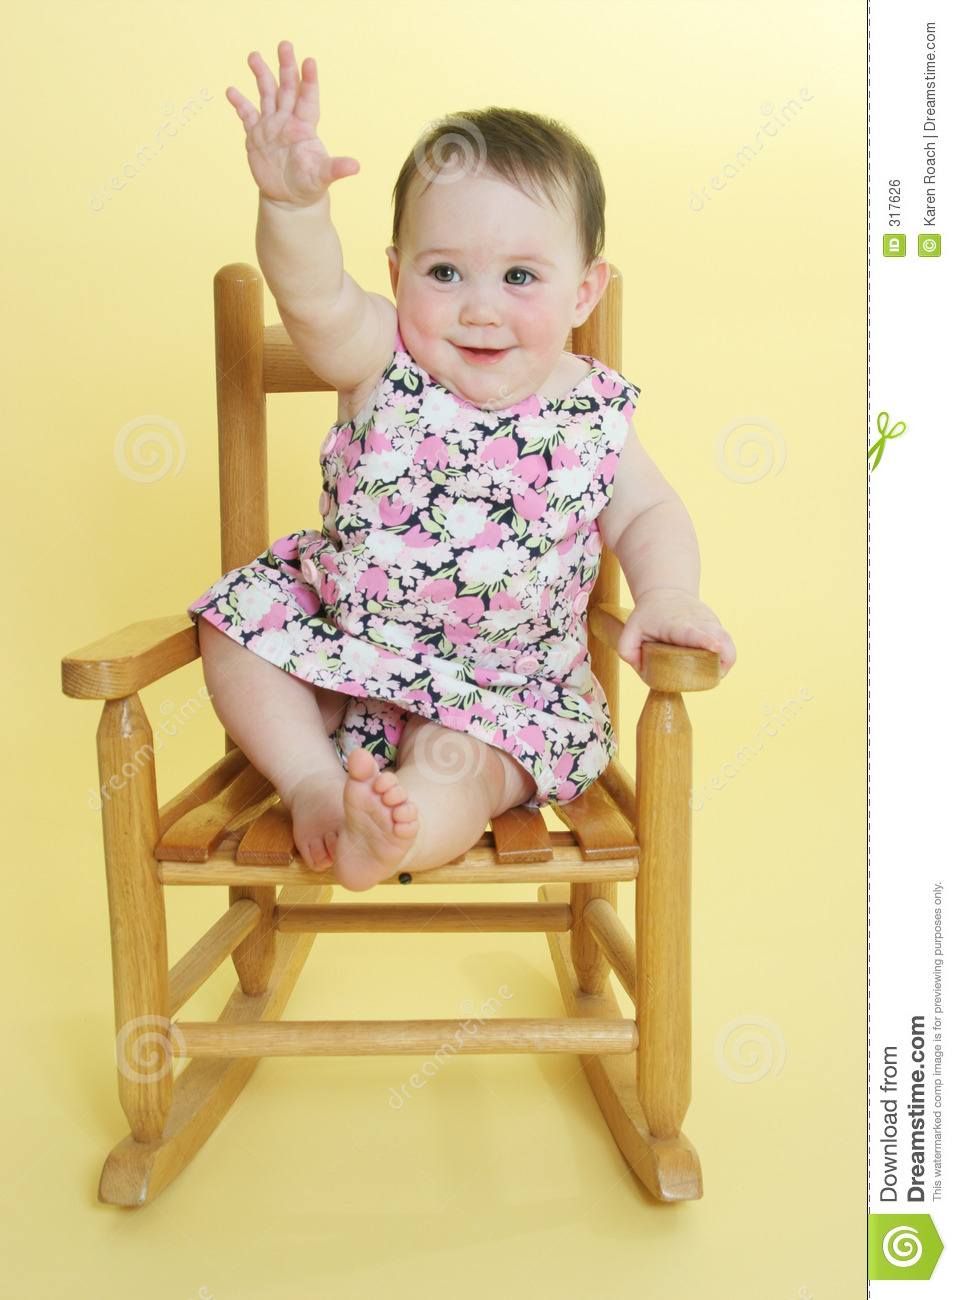 Happy Baby Raising Hand Royalty Free Stock Image - Image ...